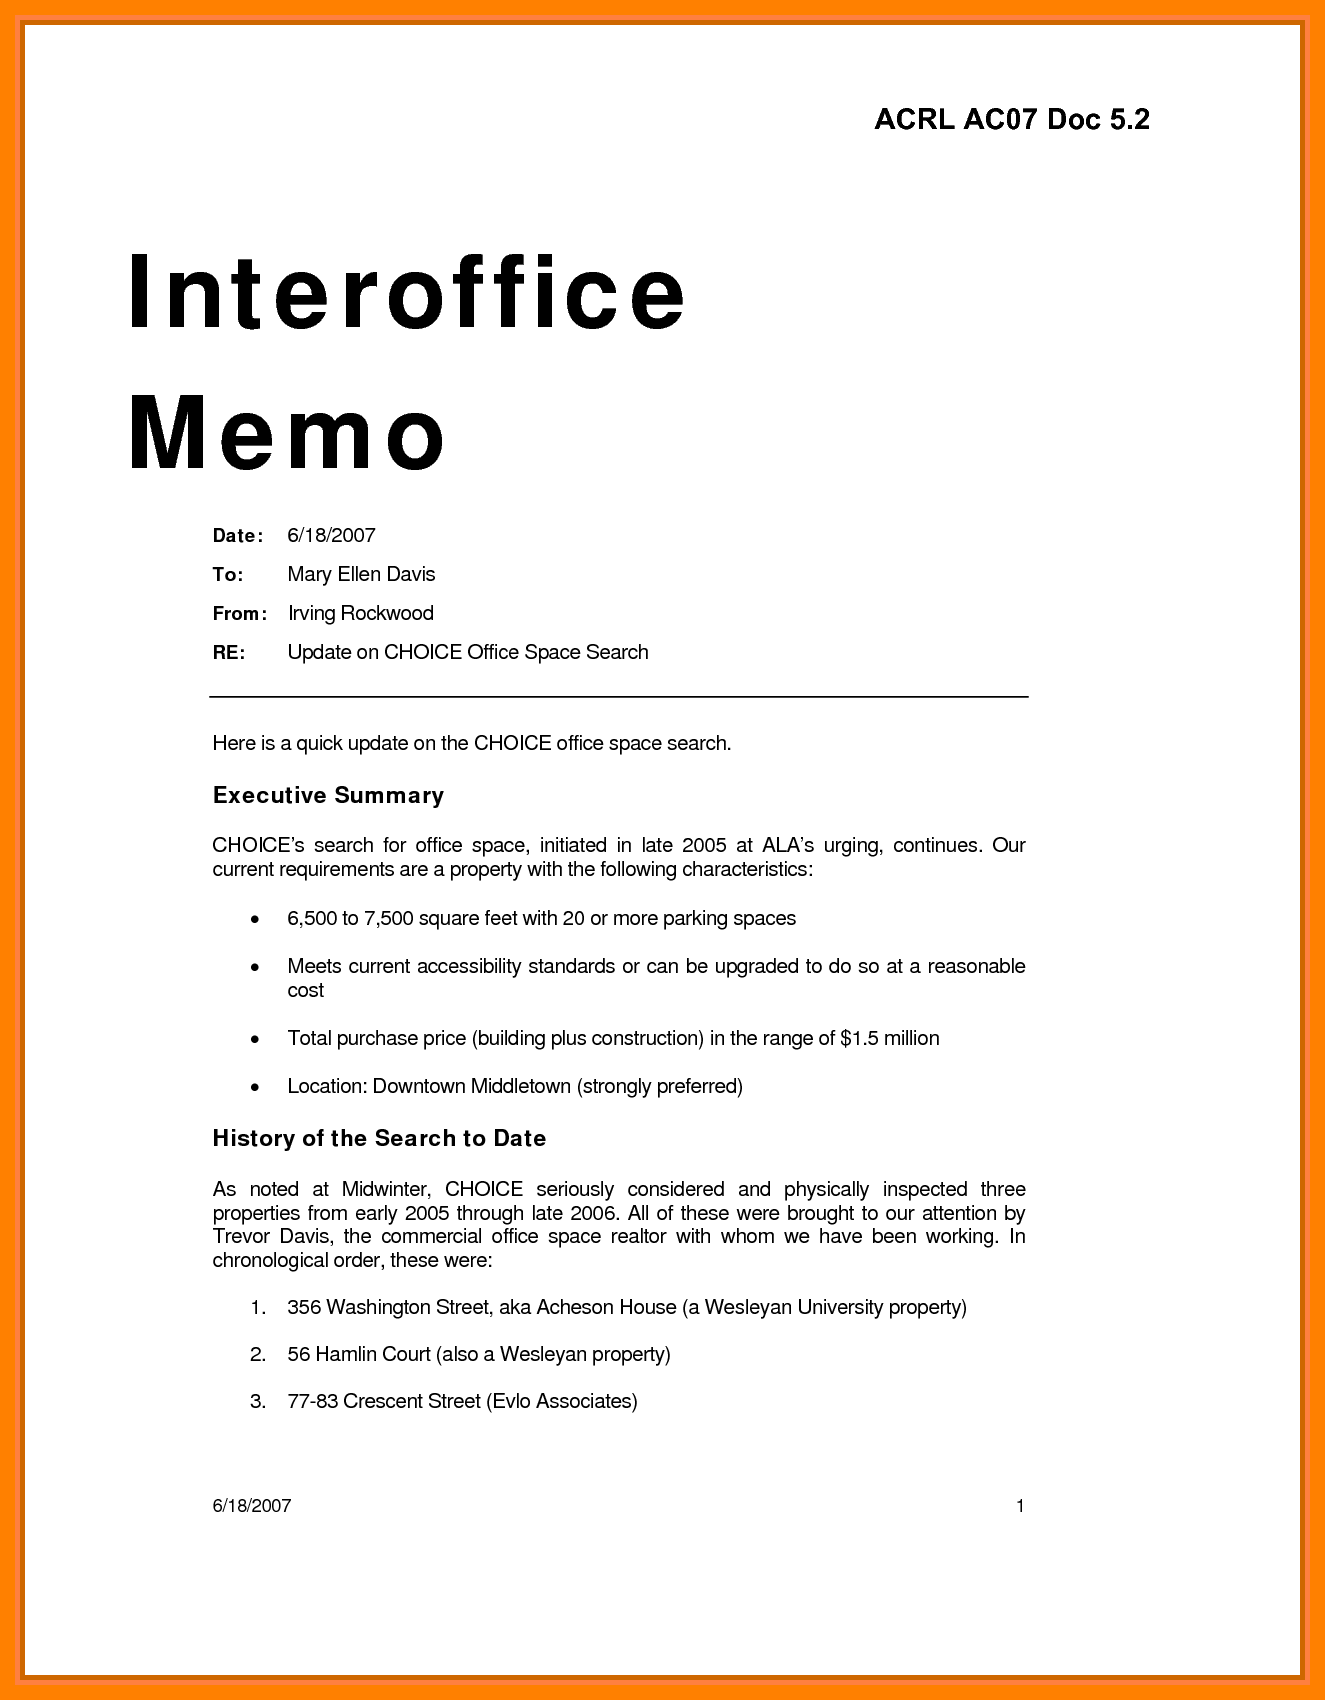 hr memo template - interoffice memo sample format web marketing manager